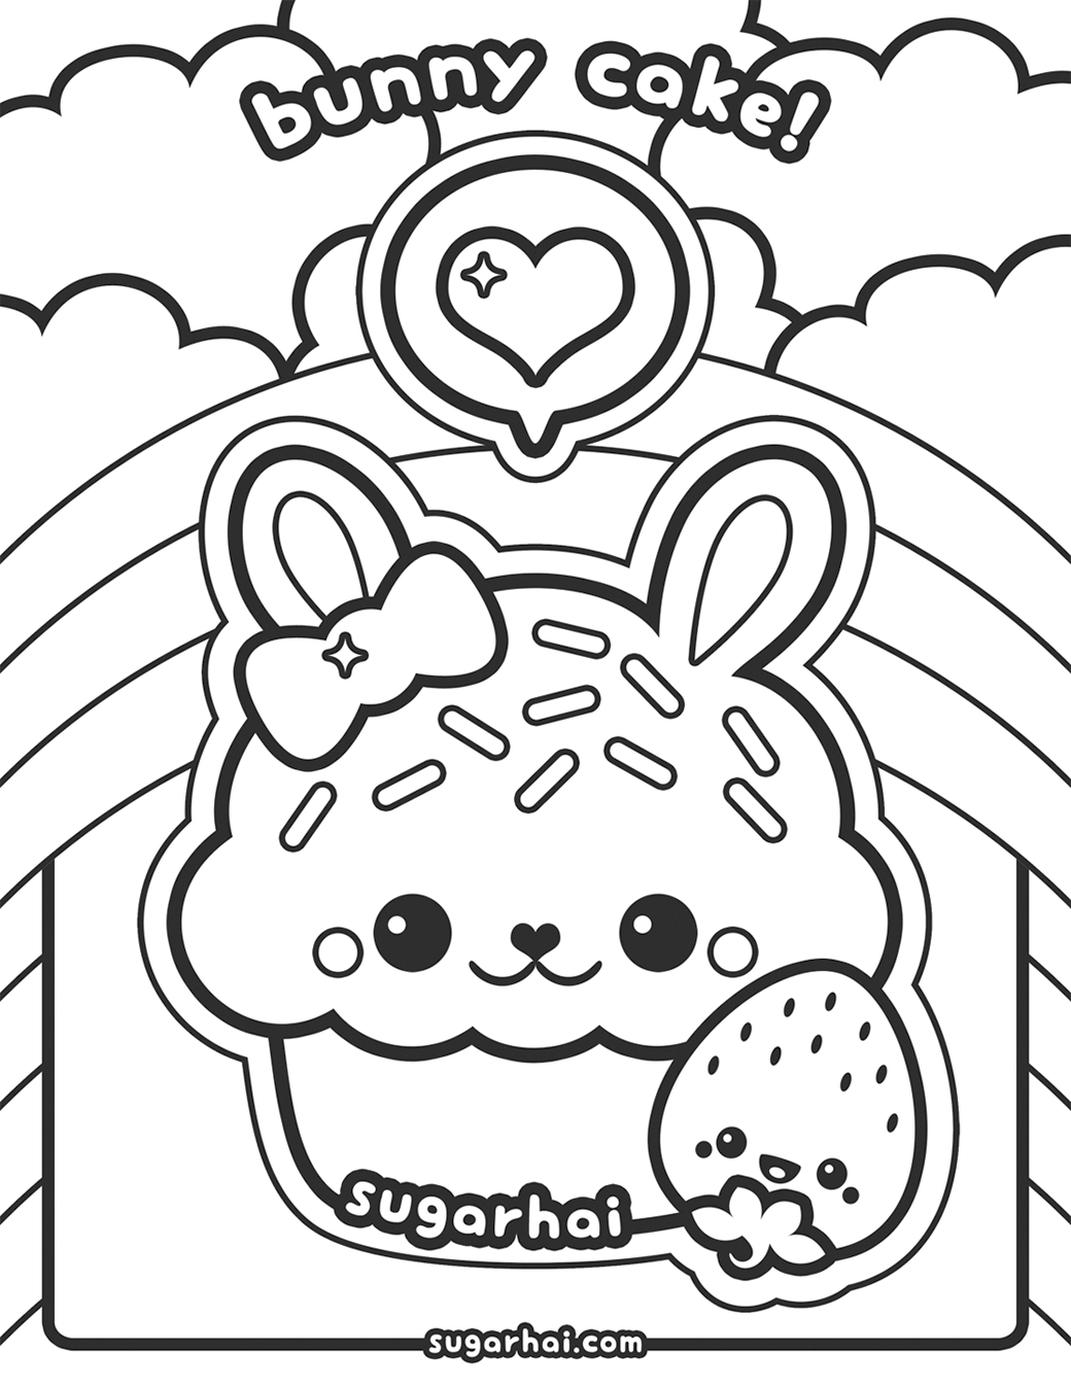 Get This Kawaii Coloring Pages Bunny Cake Cute